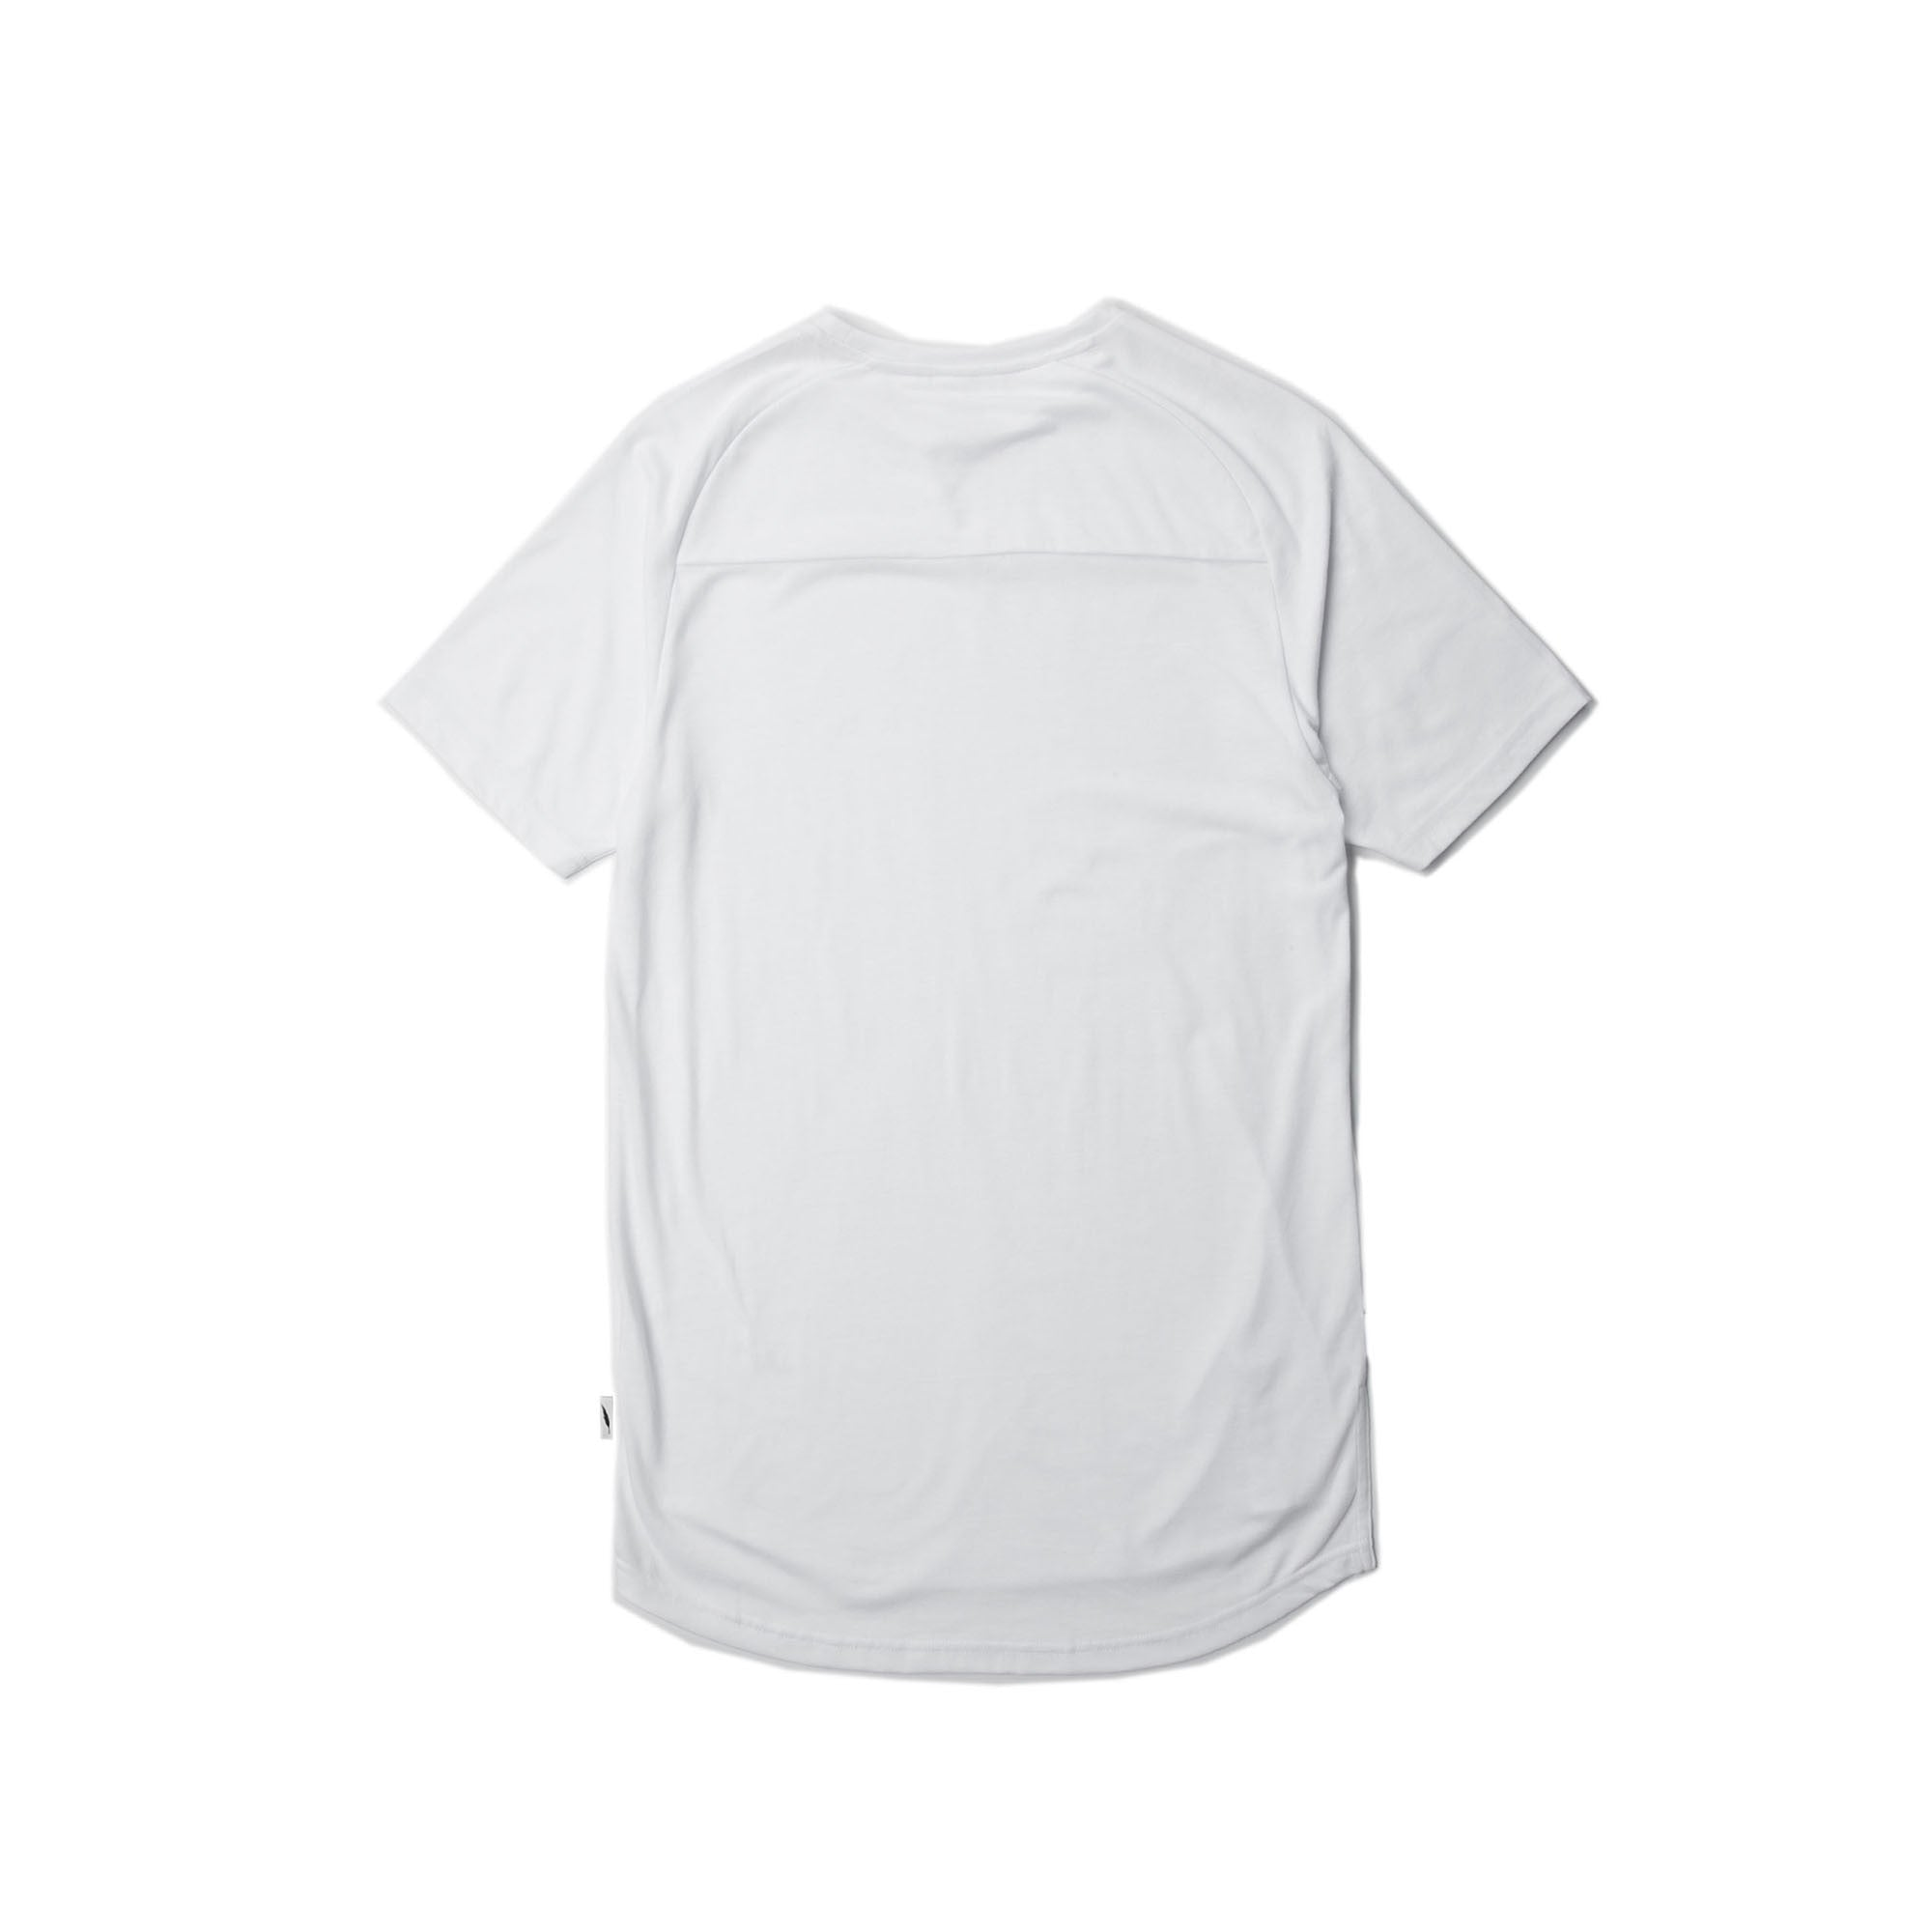 Index S/S Raglan Tee - White